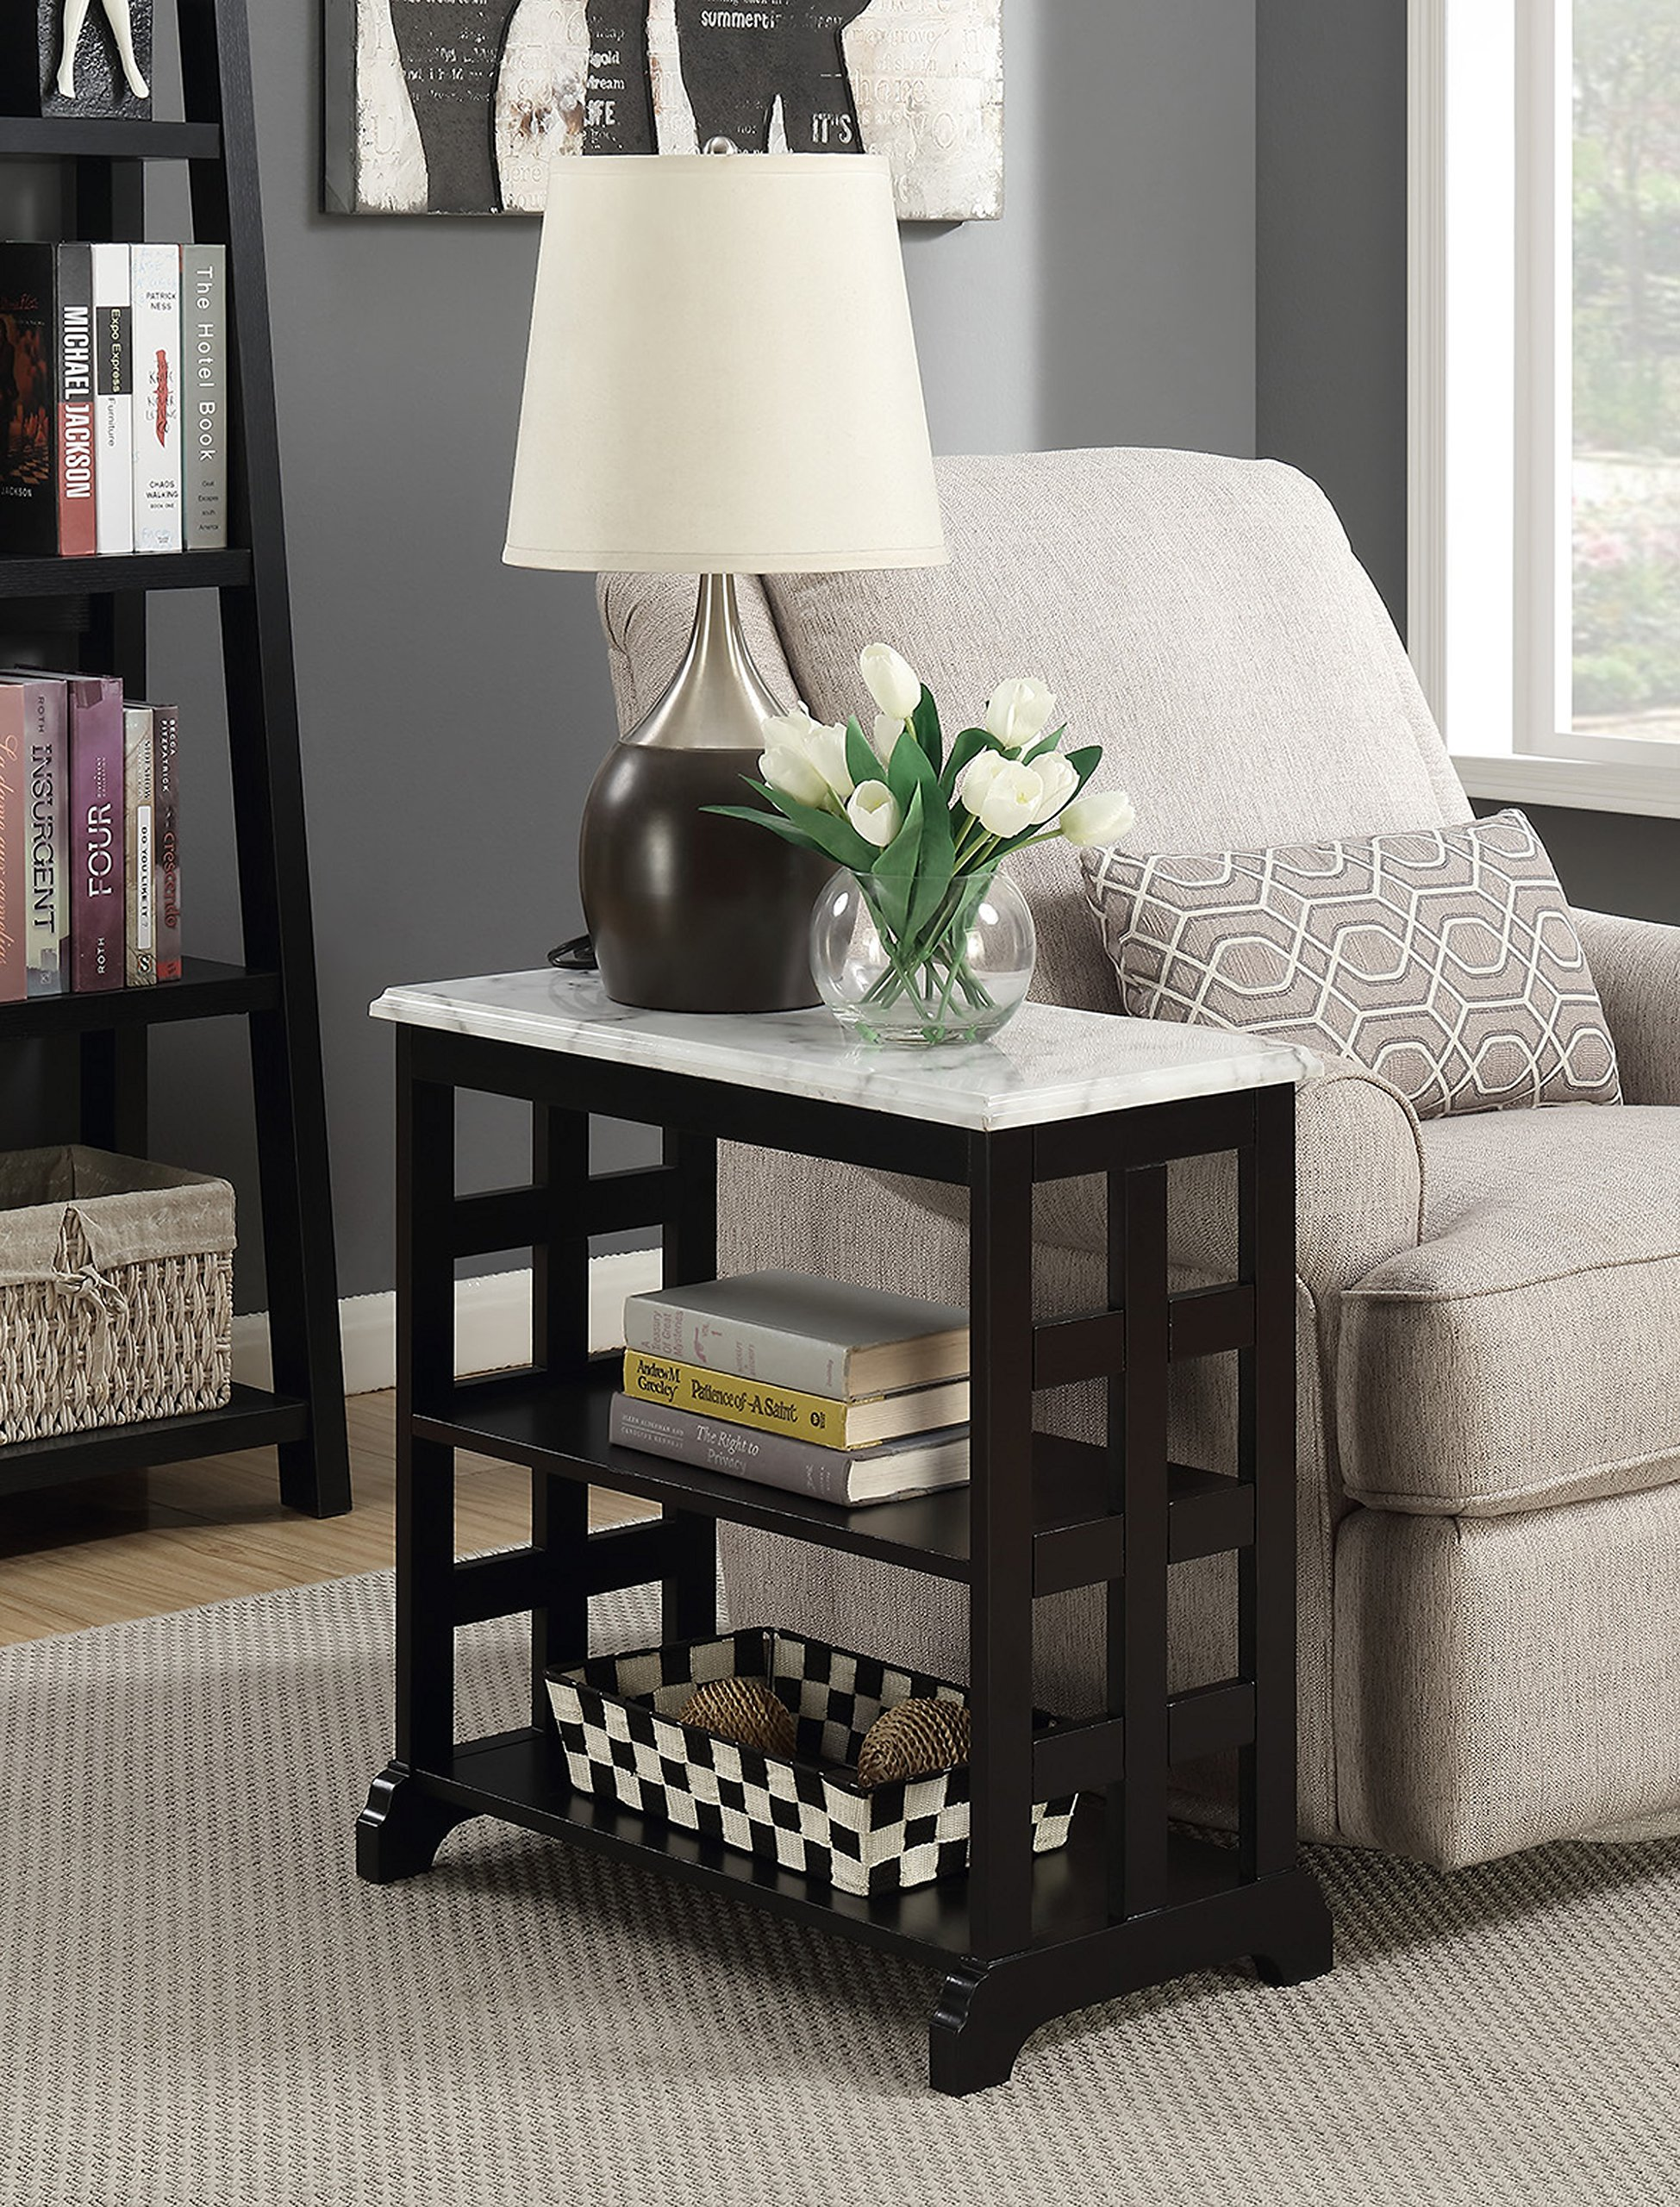 Convenience Concepts American Heritage Baldwin Chairside Table, Black by Convenience Concepts American Heritage Baldwin Chairside Table, Black